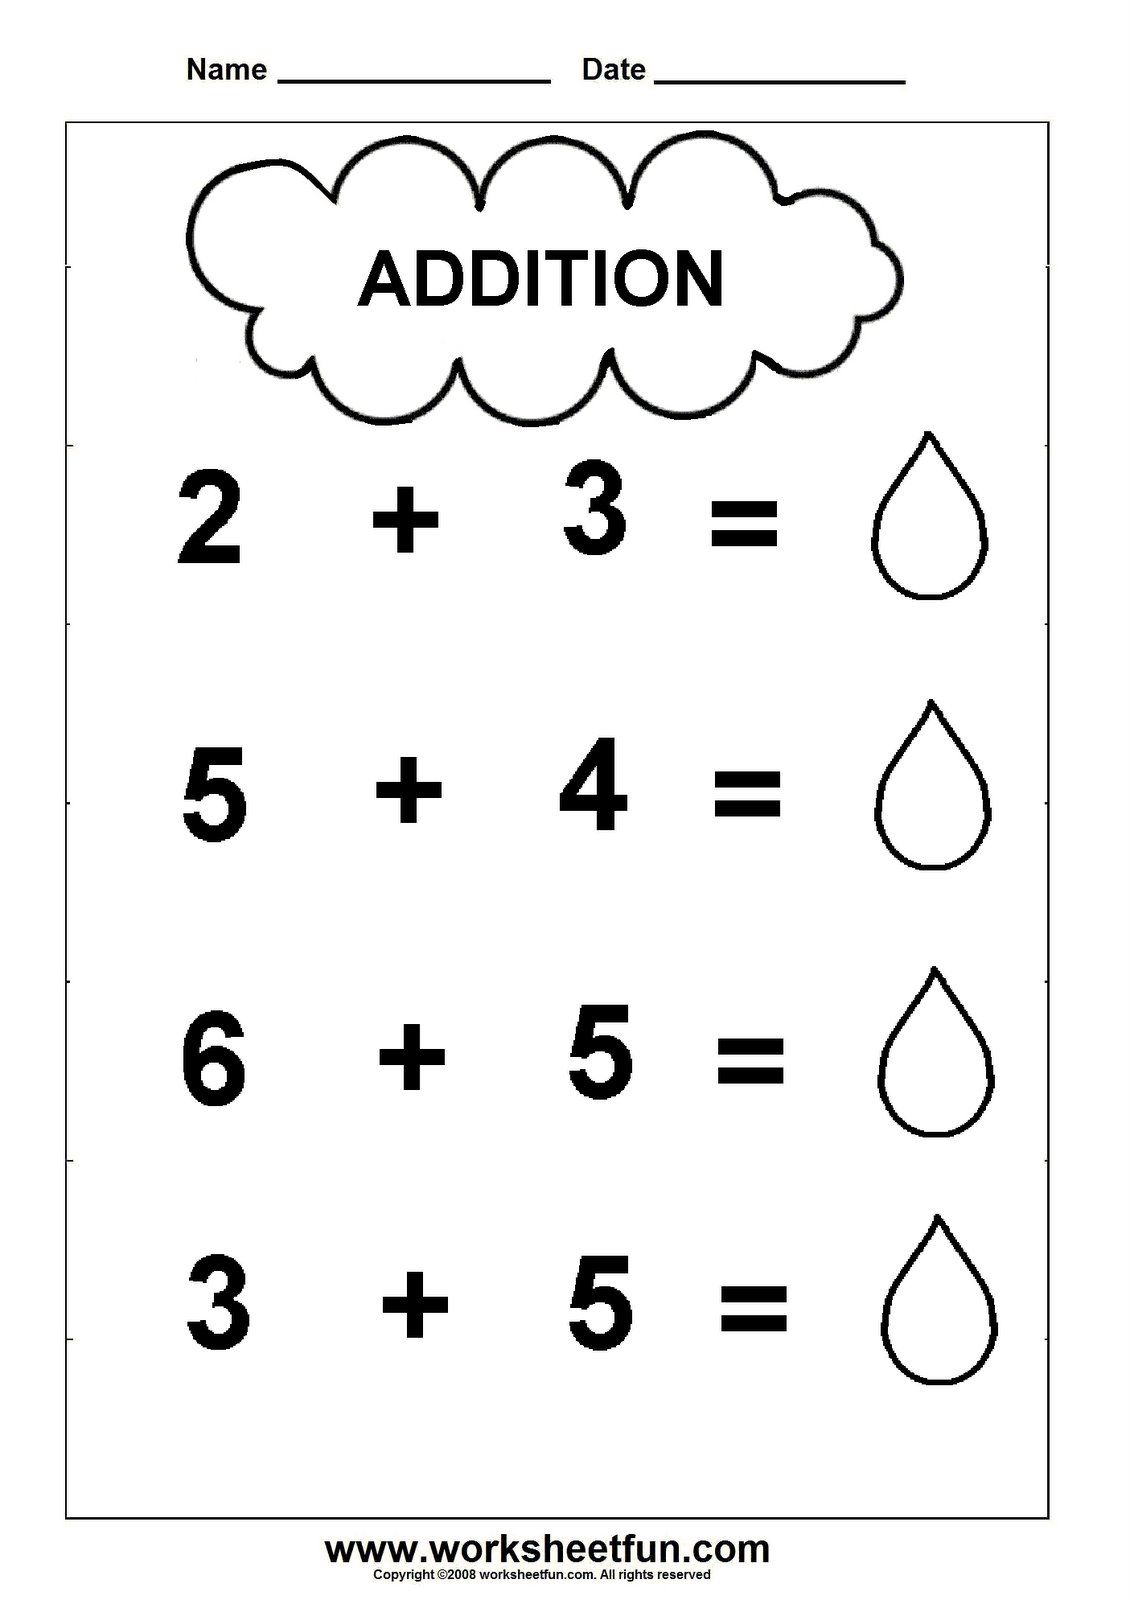 pre k addition worksheets addition worksheet cloud theme 1 1 digit addition 2 worksheets - Addition Worksheet